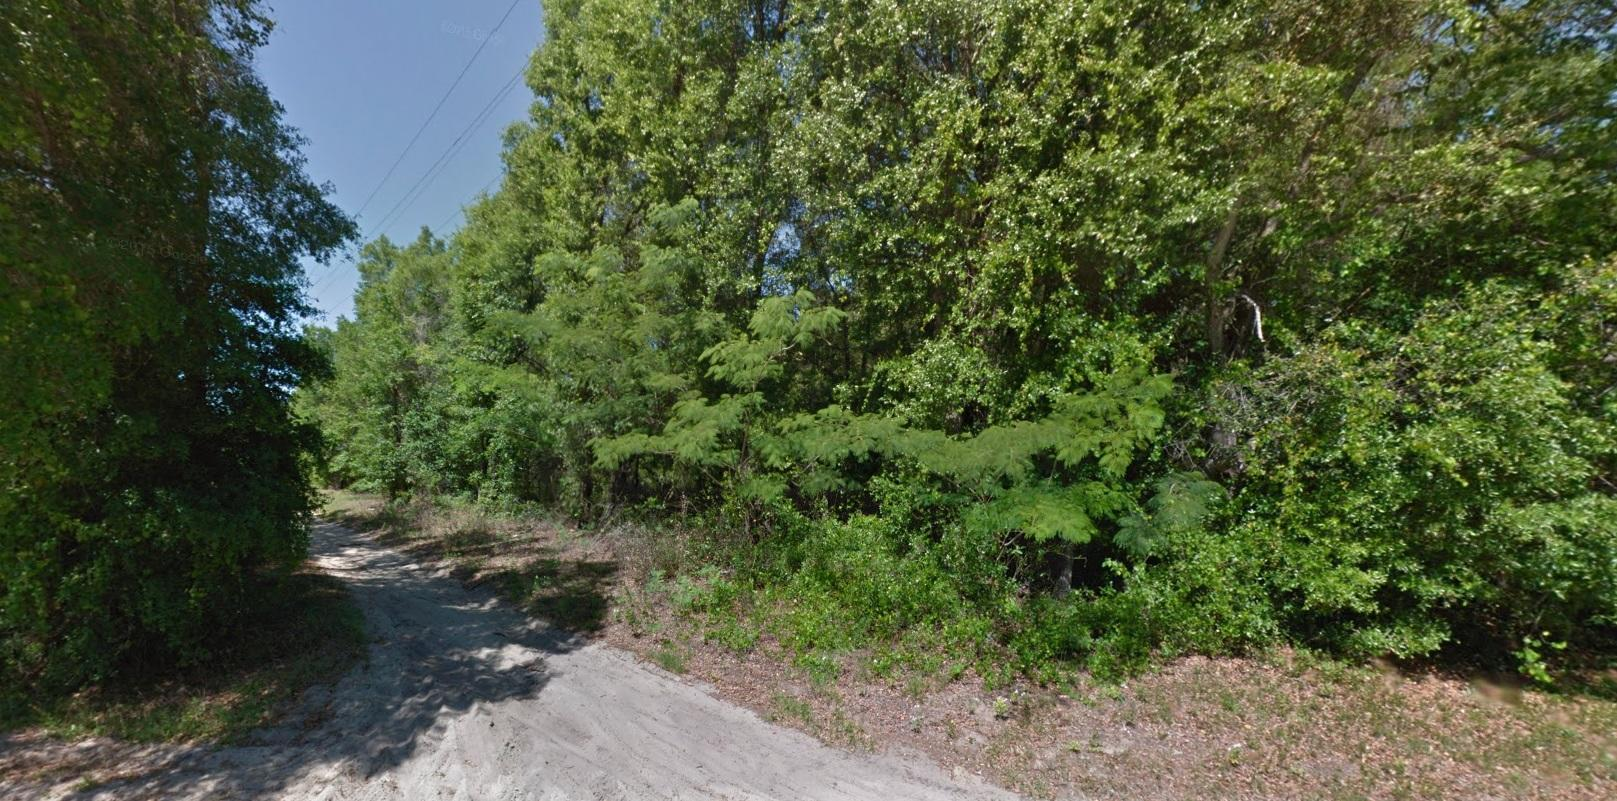 Plenty of Options for this Acreage Property in Area with Many Lakes - Image 3